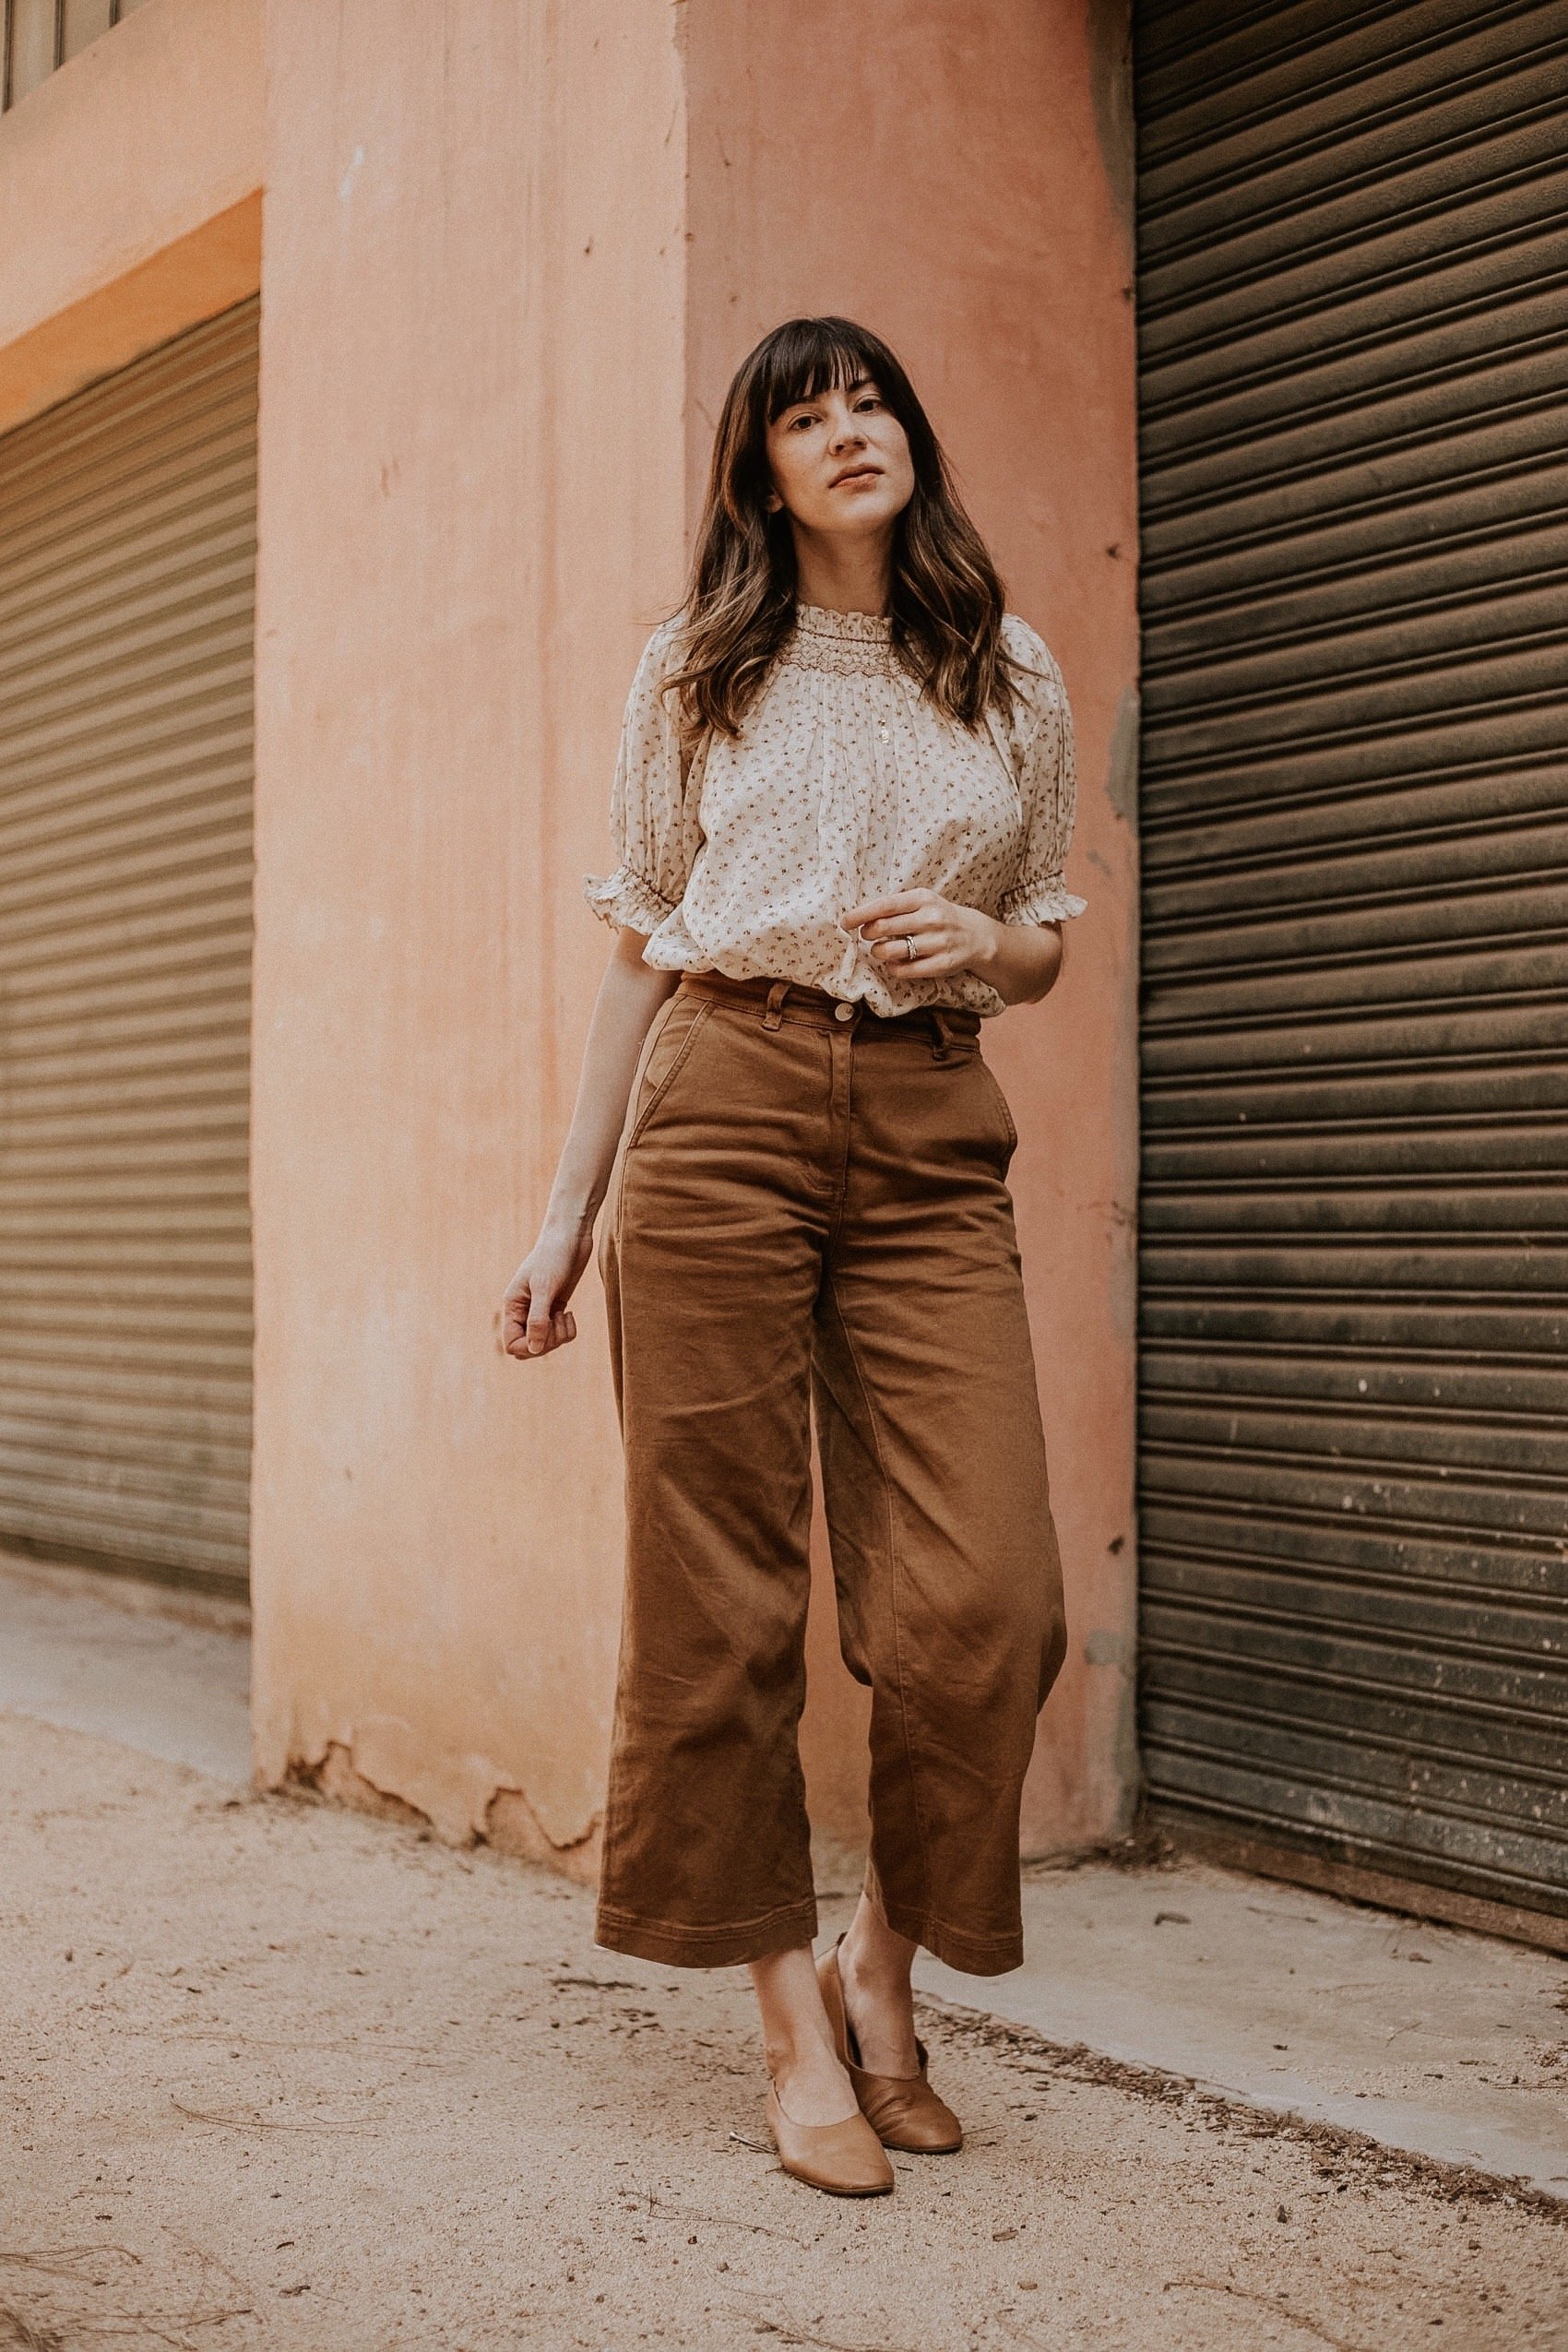 Los Angeles Ethical Fashion Blogger wearing Doen Top and Everlane pants